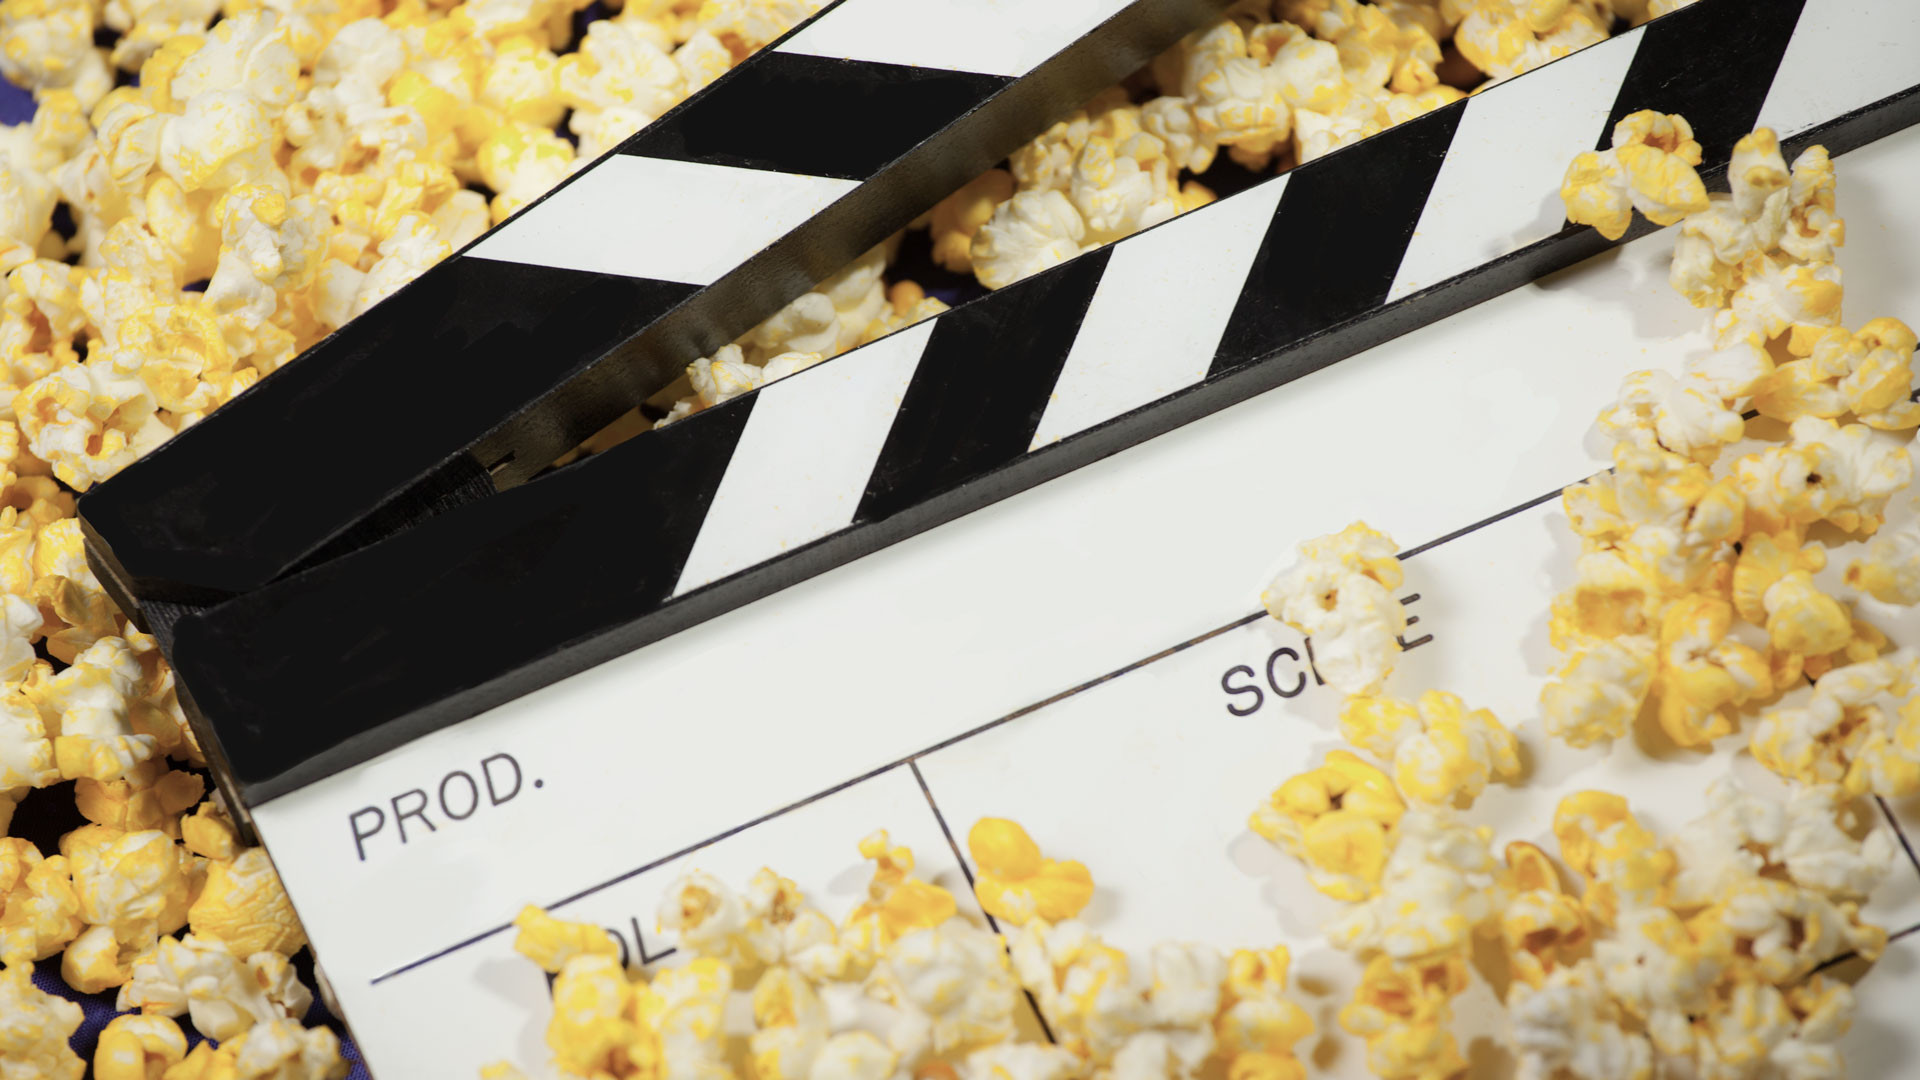 Res: 1920x1080, Popcorn images popcorn ❣ HD wallpaper and background photos